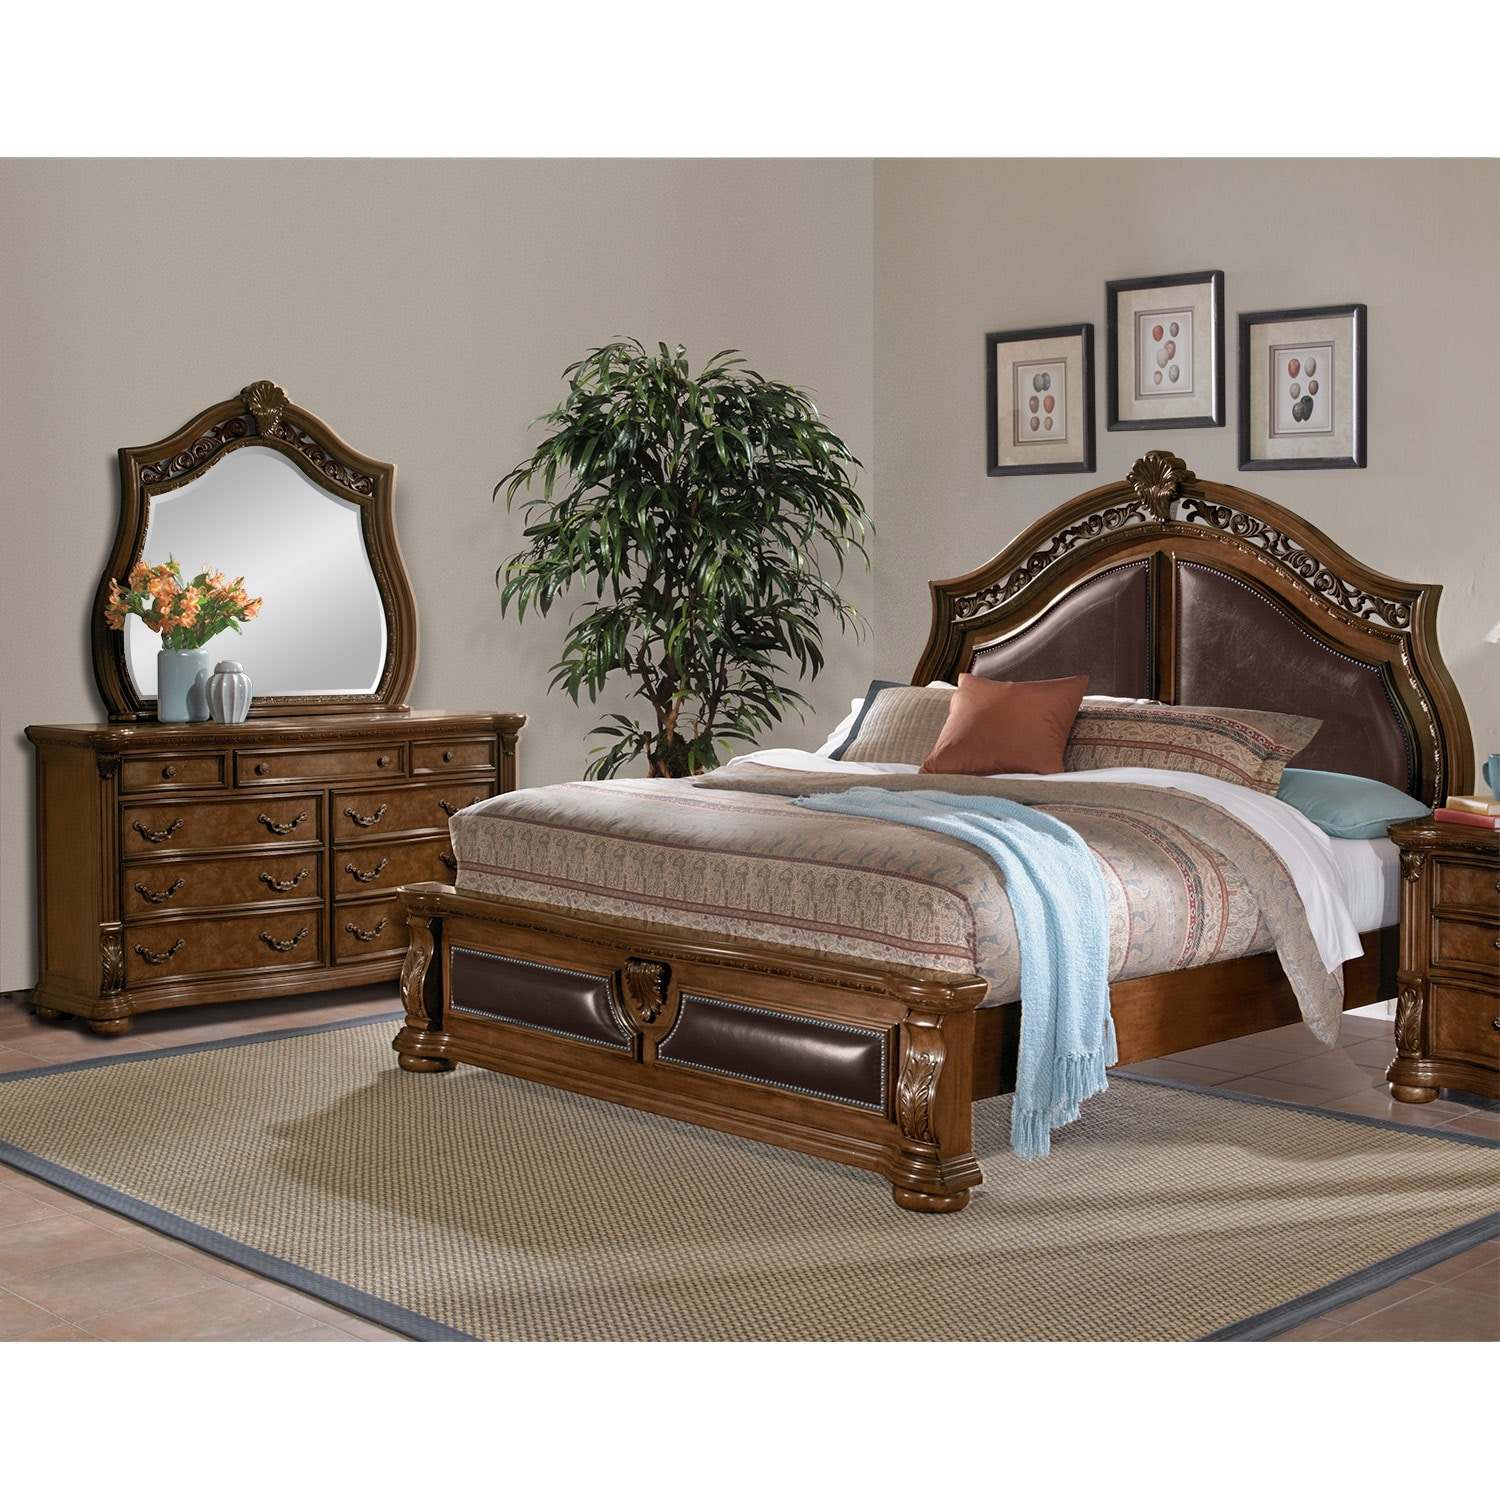 Innovative Upholstered Bedroom Set Style